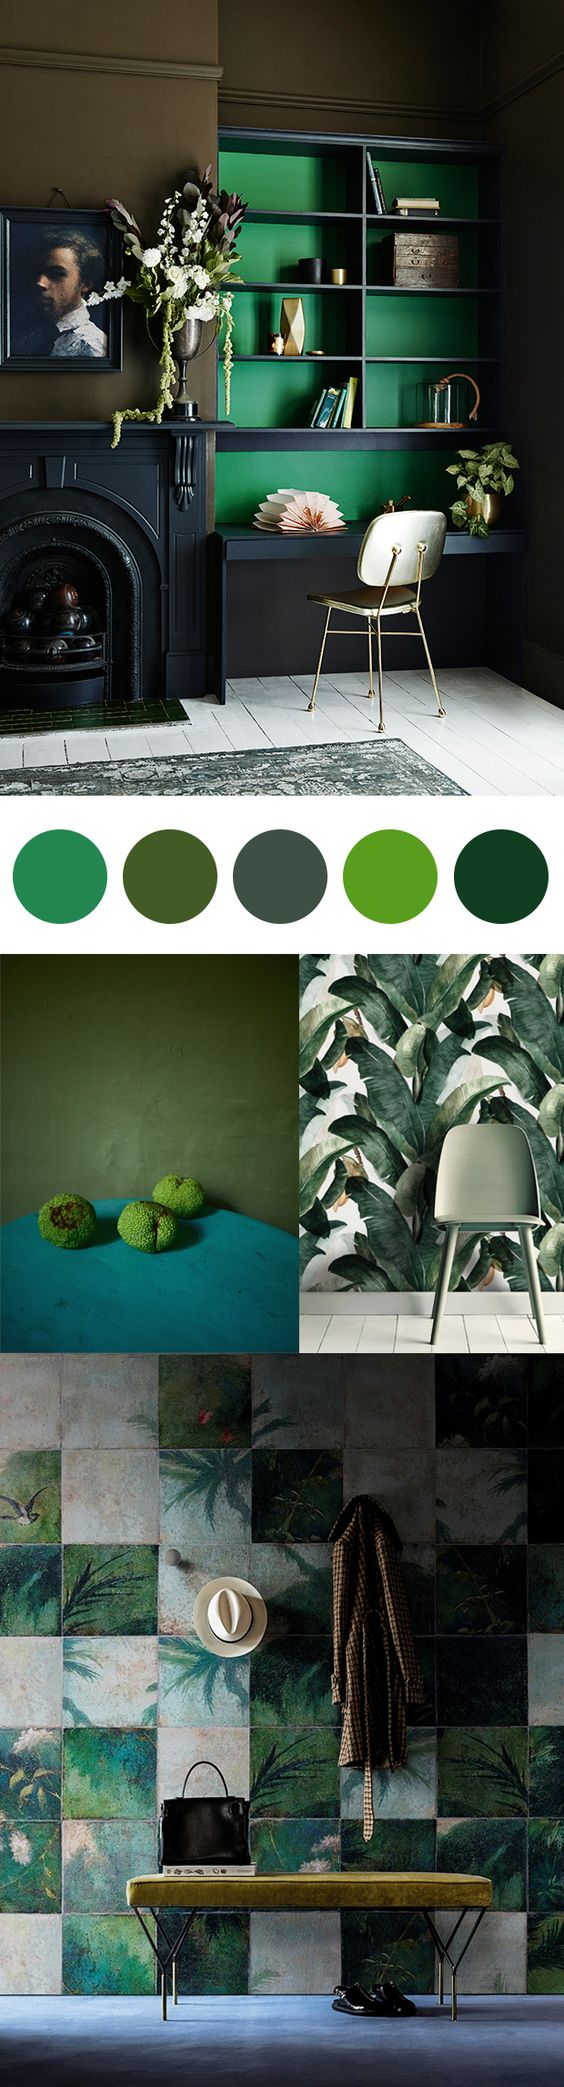 10 home decor color combinations that are actually magic for Green decorations for home